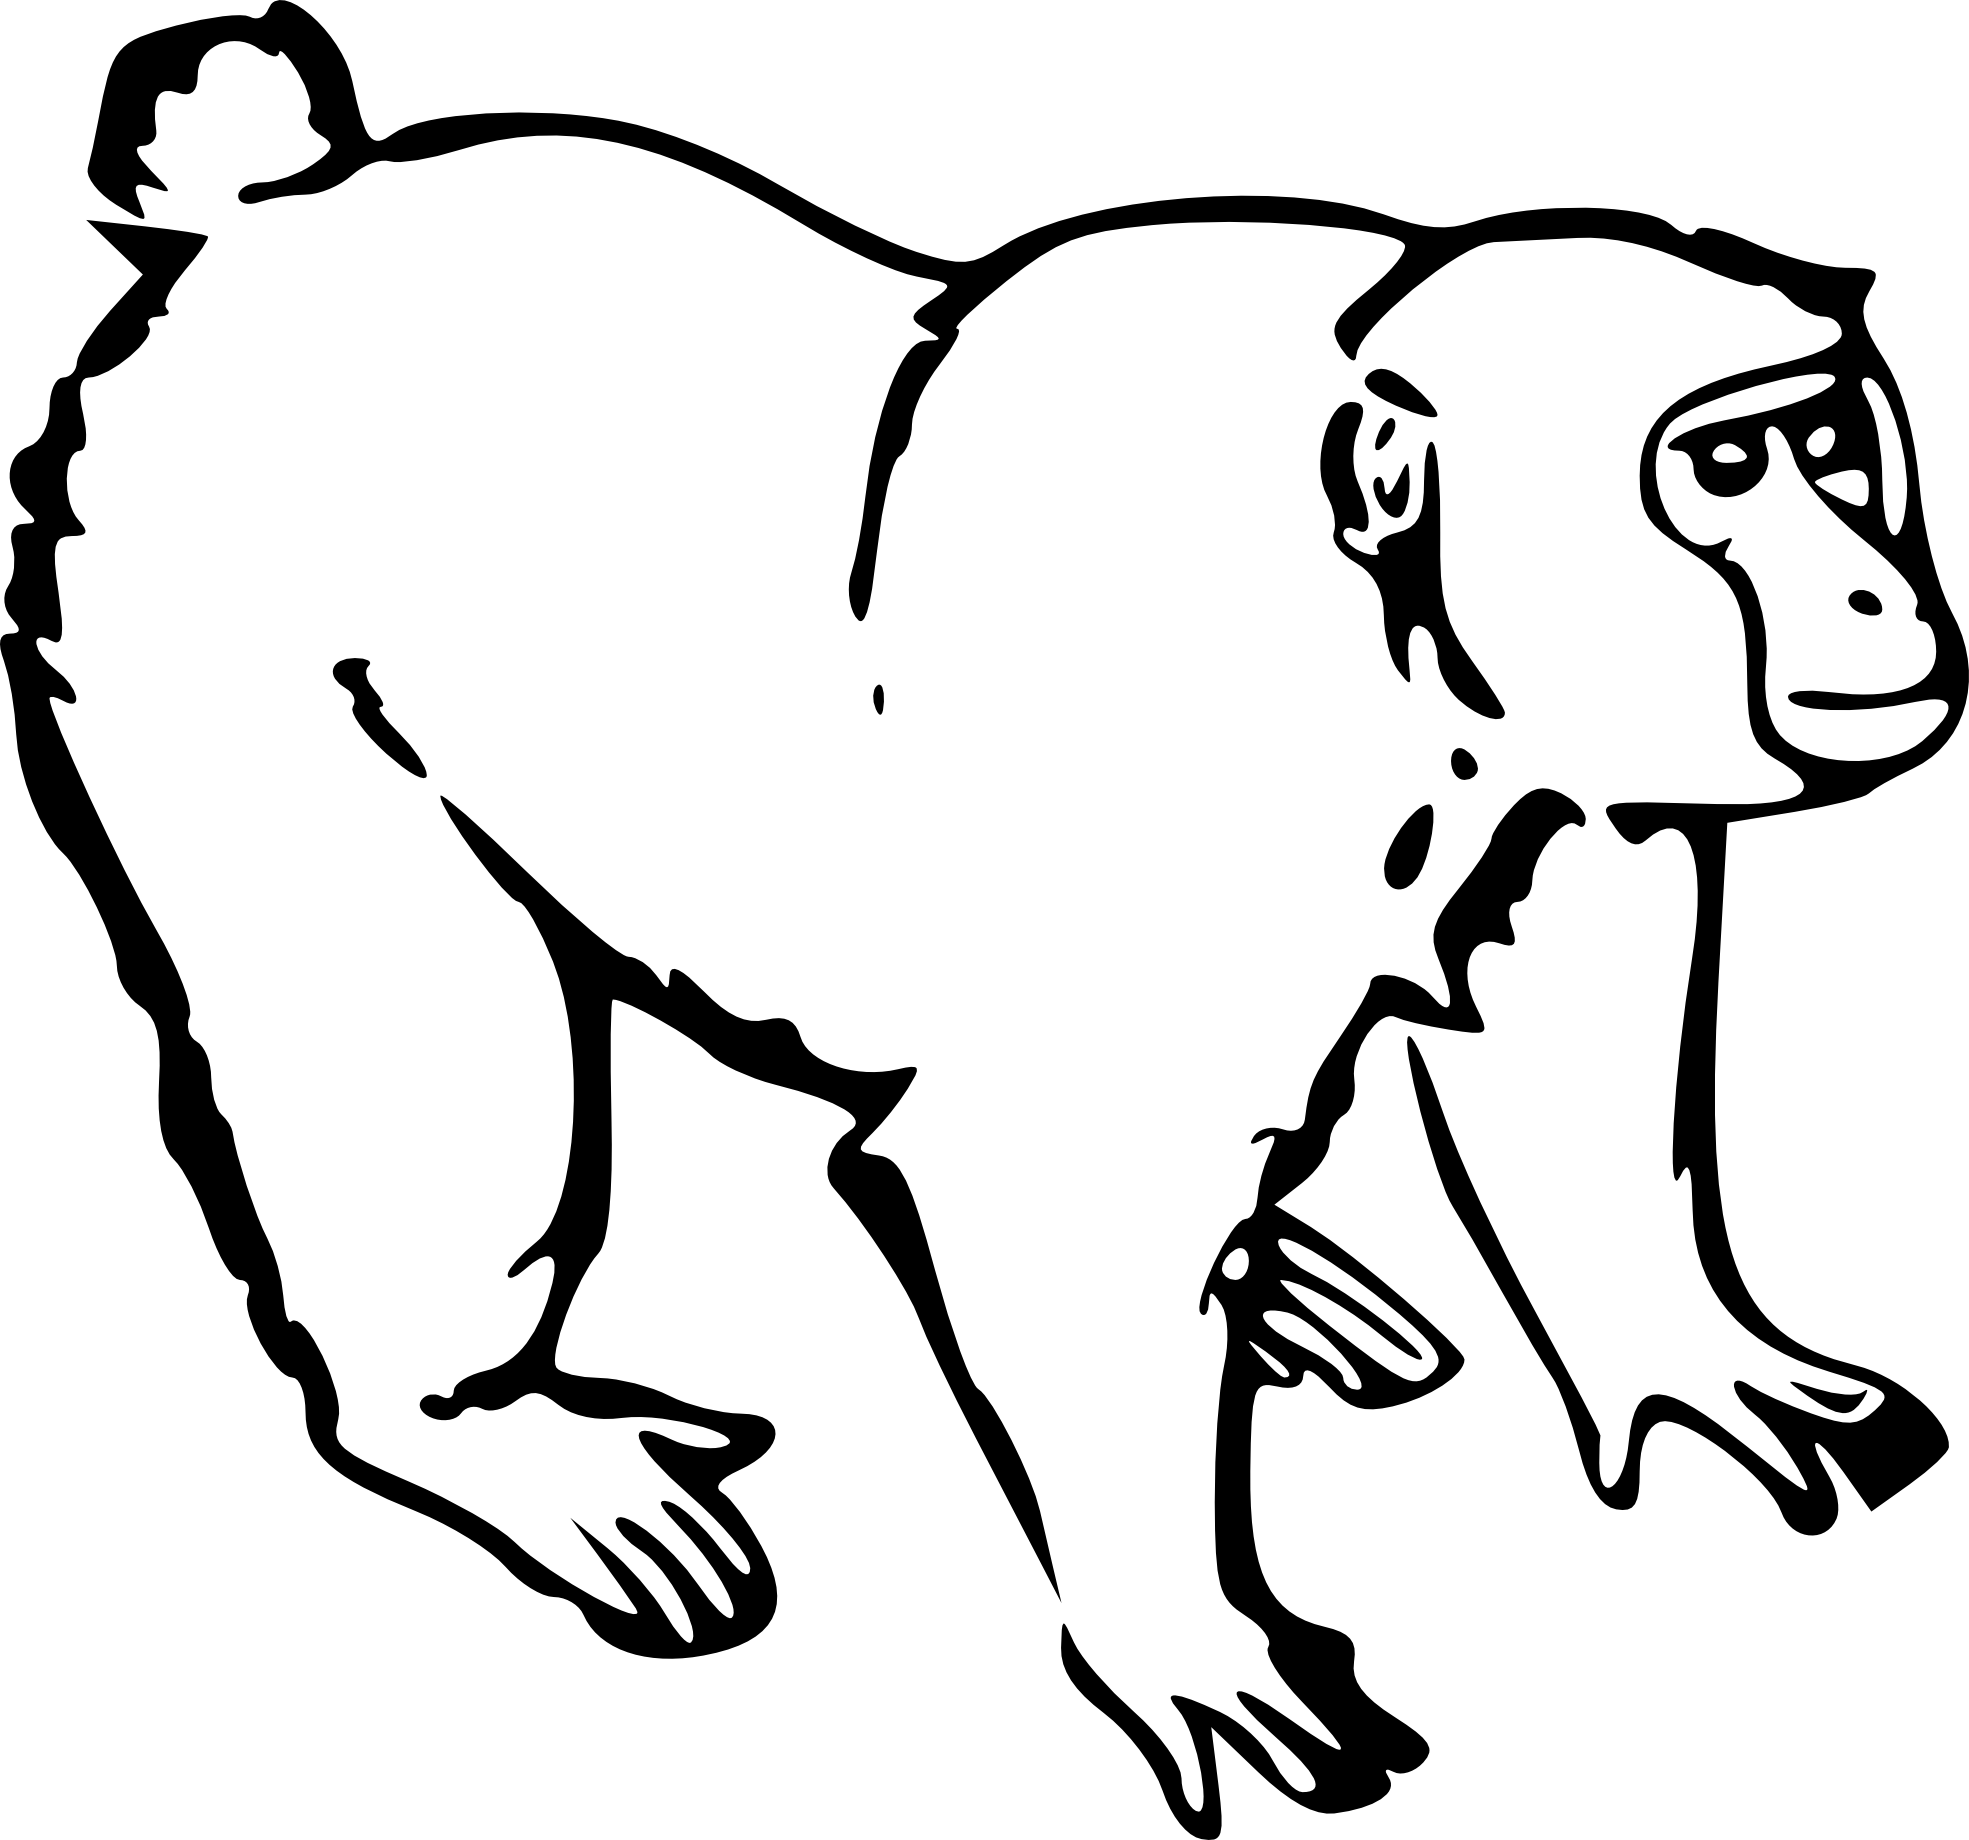 Zzve Line Art : Monkey line art clipart best